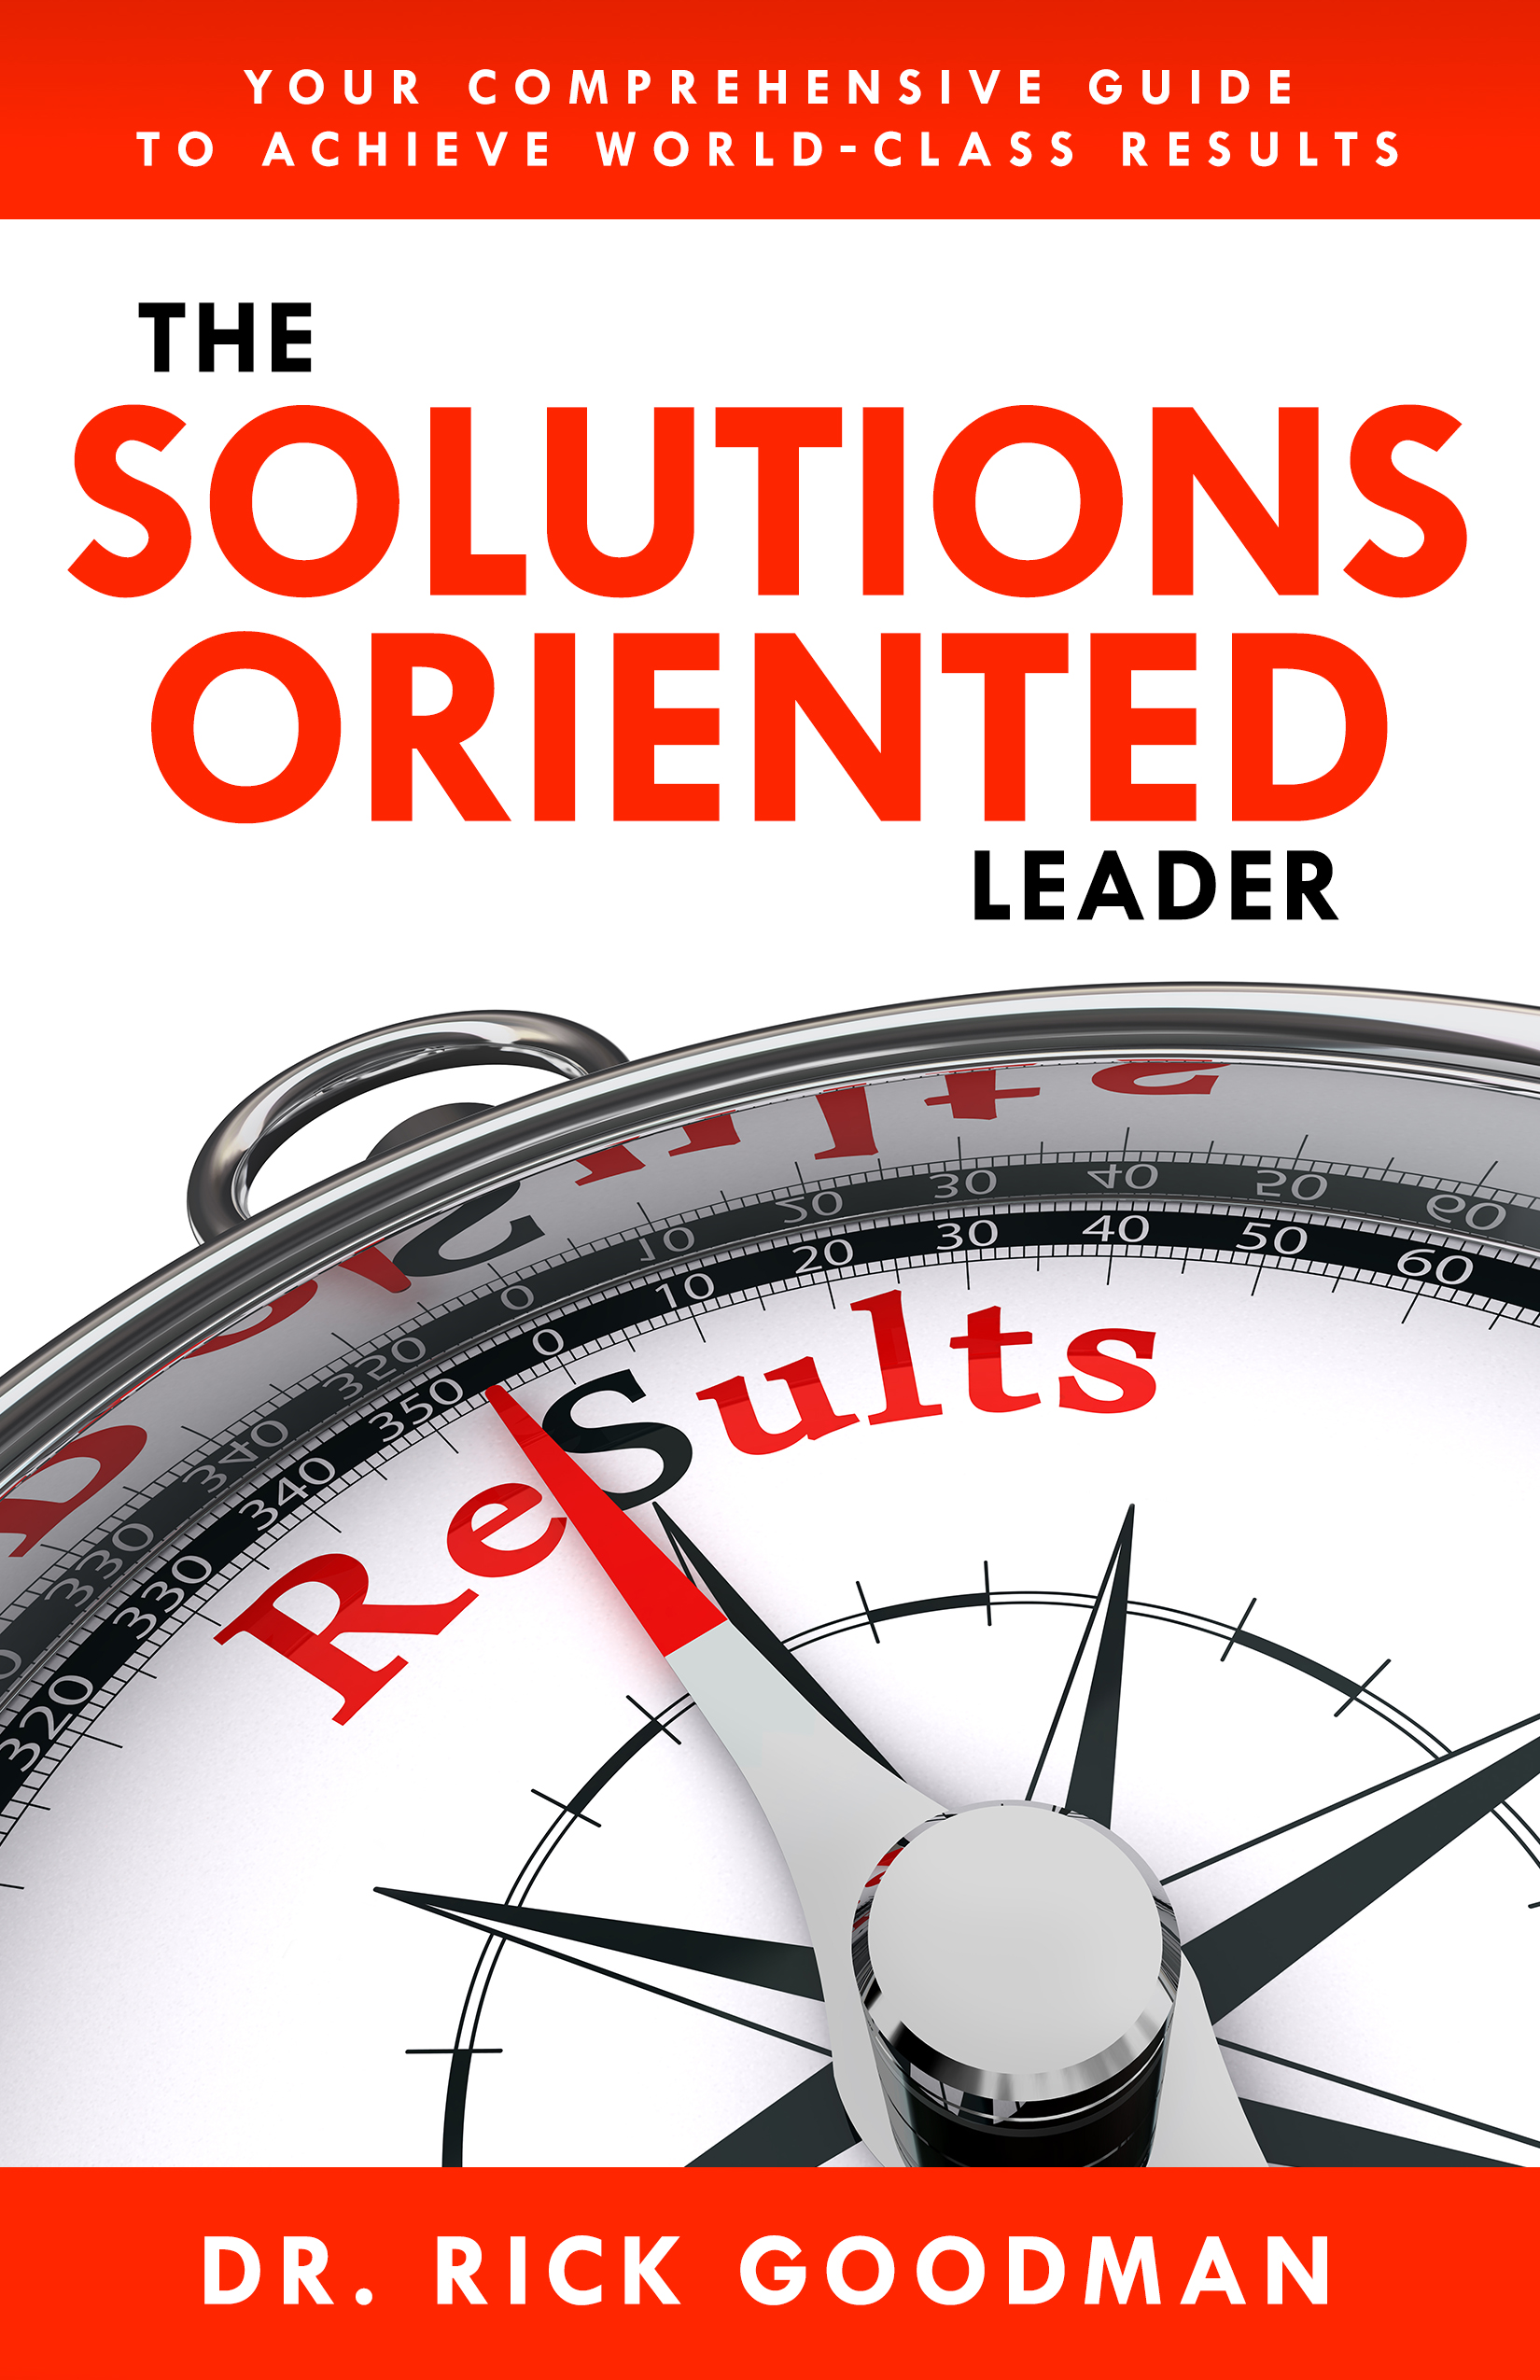 The Solutions Oriented Leader - Dr. Rick Goodman